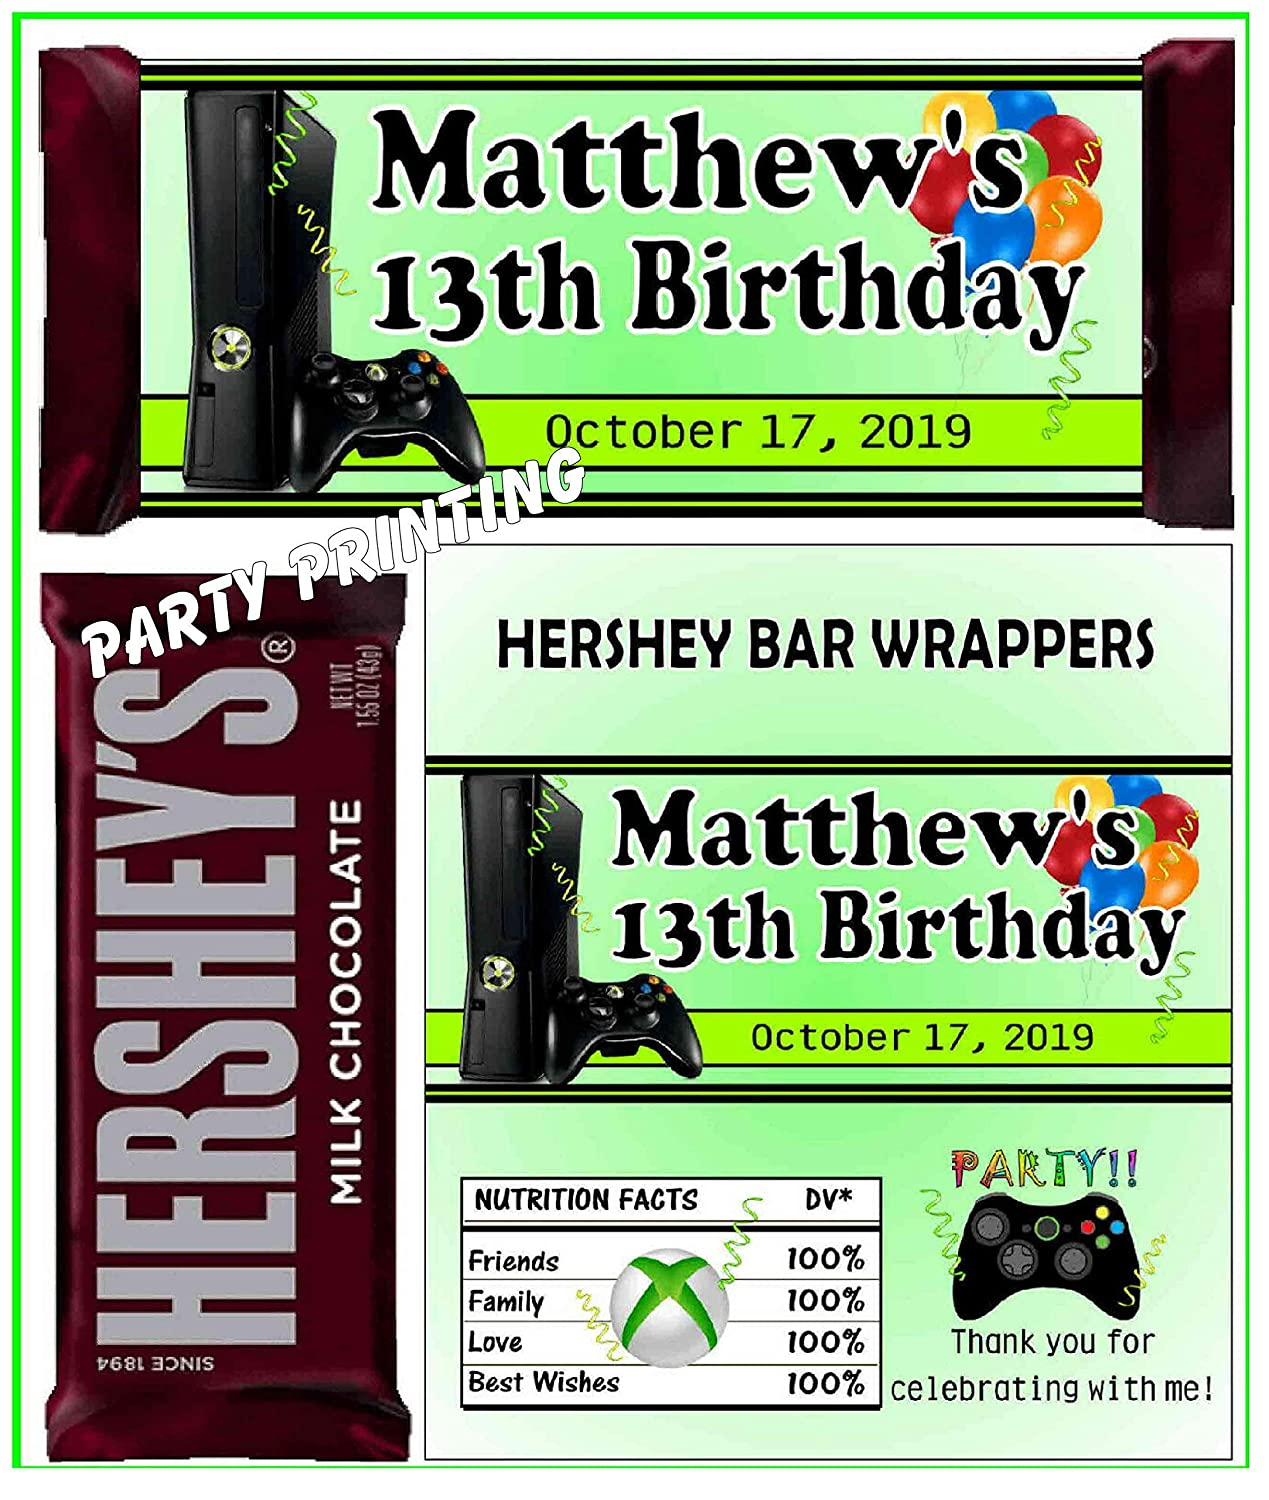 12 VIDEO GAME GAMING BIRTHDAY PARTY FAVORS CANDY BAR WRAPPERS PERSONALIZED